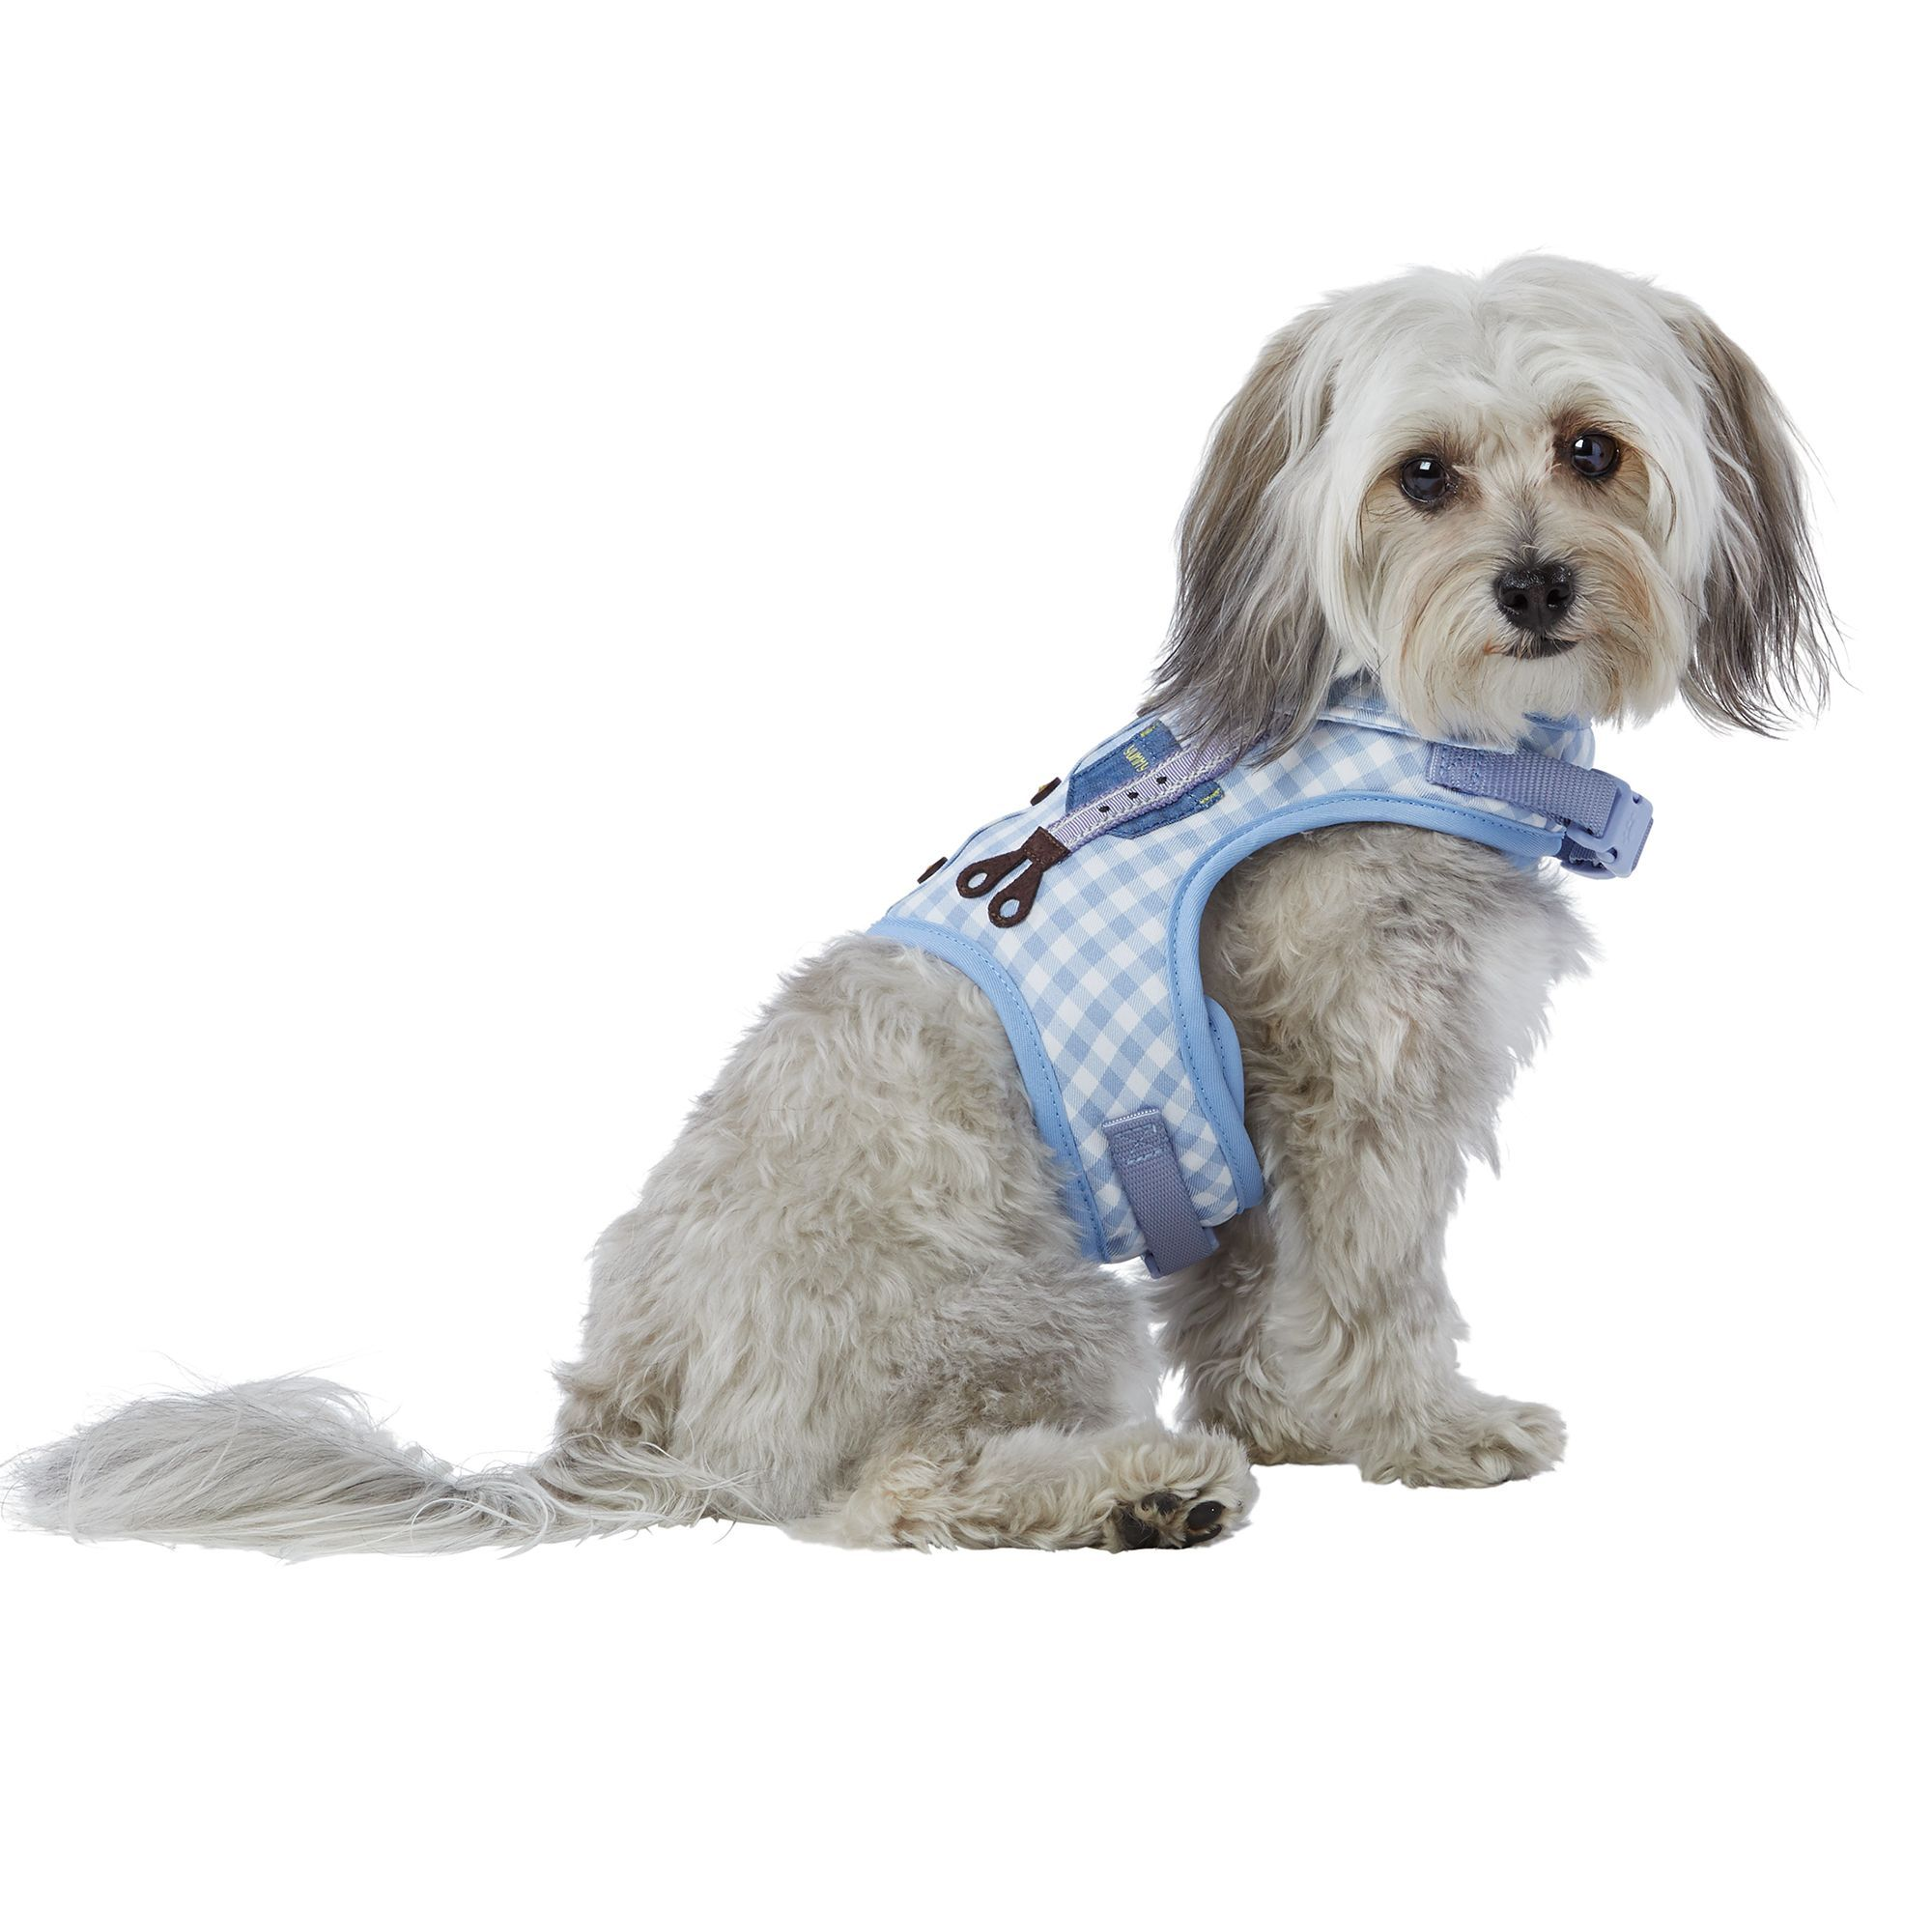 Top Paw Suspenders Puppy Dog Harness Size 2x Small Blue White